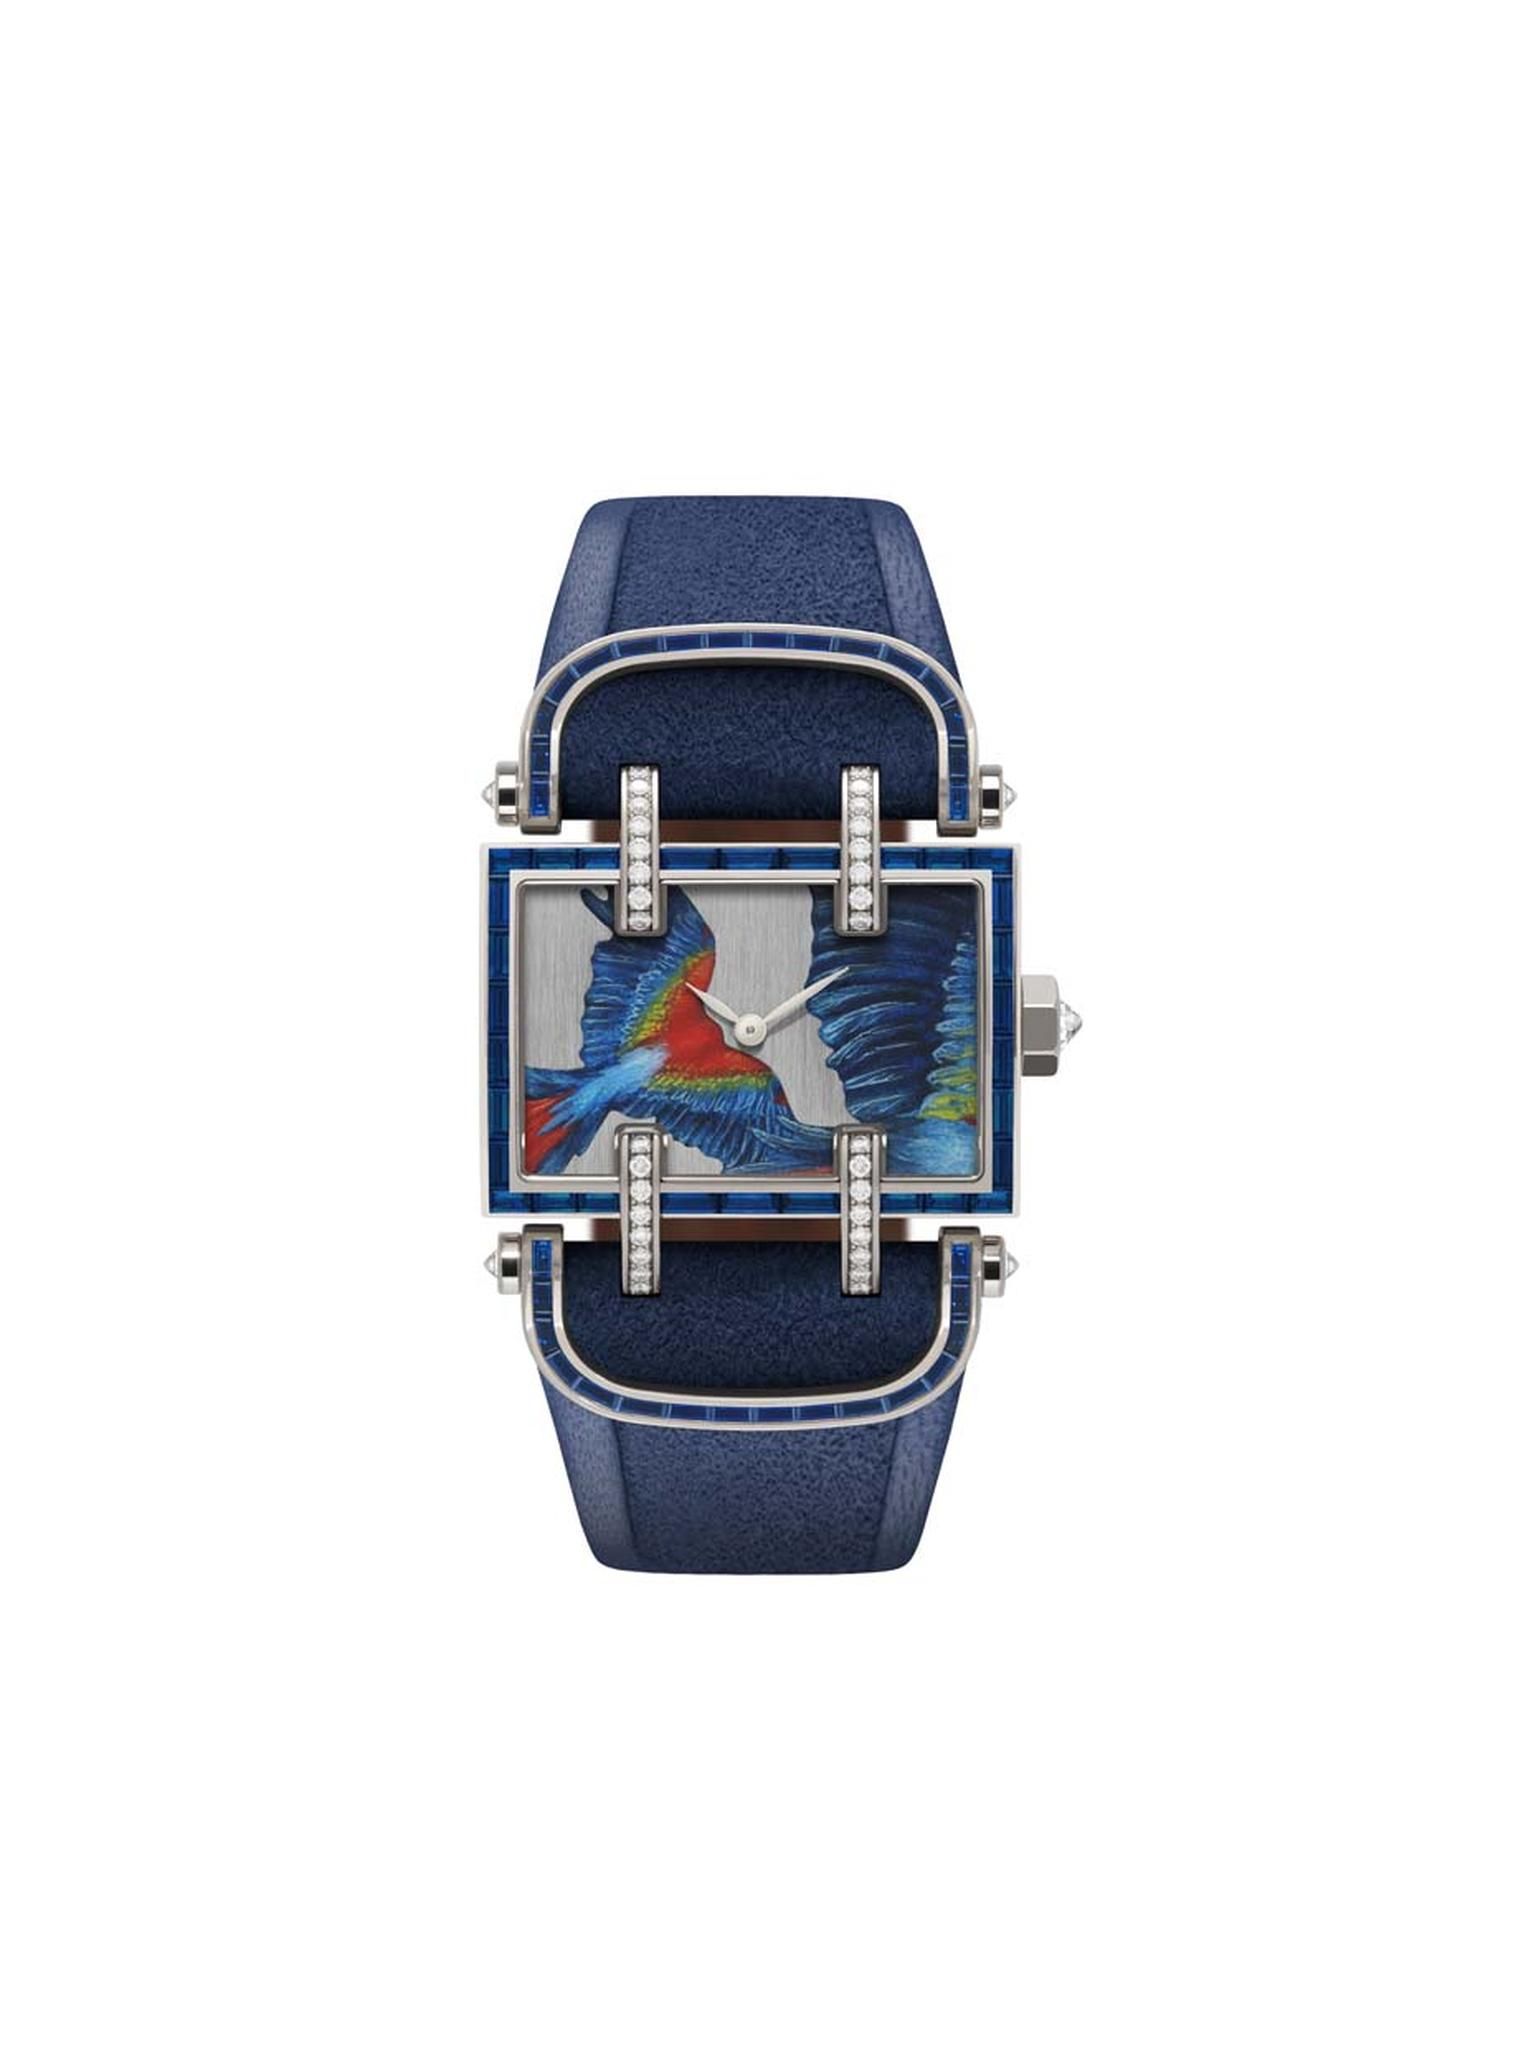 One-of a kind DeLaneau Atame Flying Parrot Grand Feu enamel watch